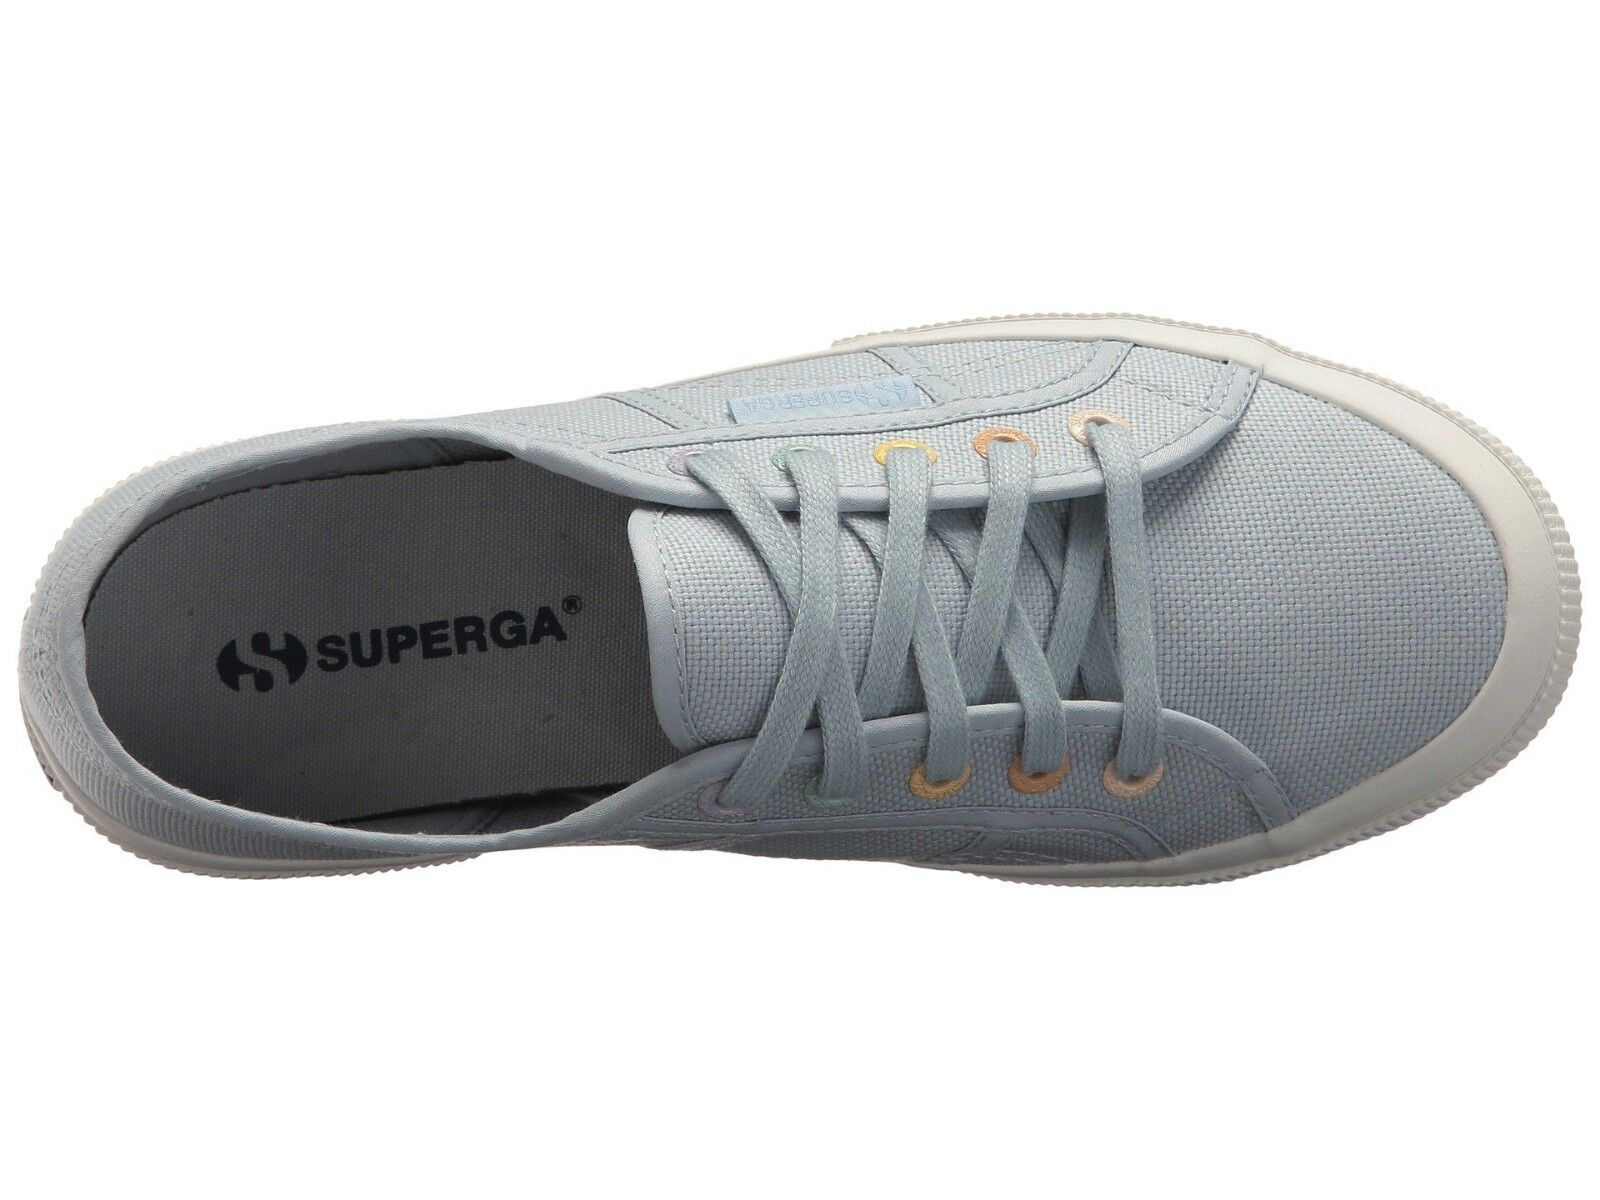 Superga 2750 Farbeeycotw  Lace-Up Lace-Up Lace-Up Turnschuhe Dusty Blau Größe US damen 7 Men 5.5 4828ba